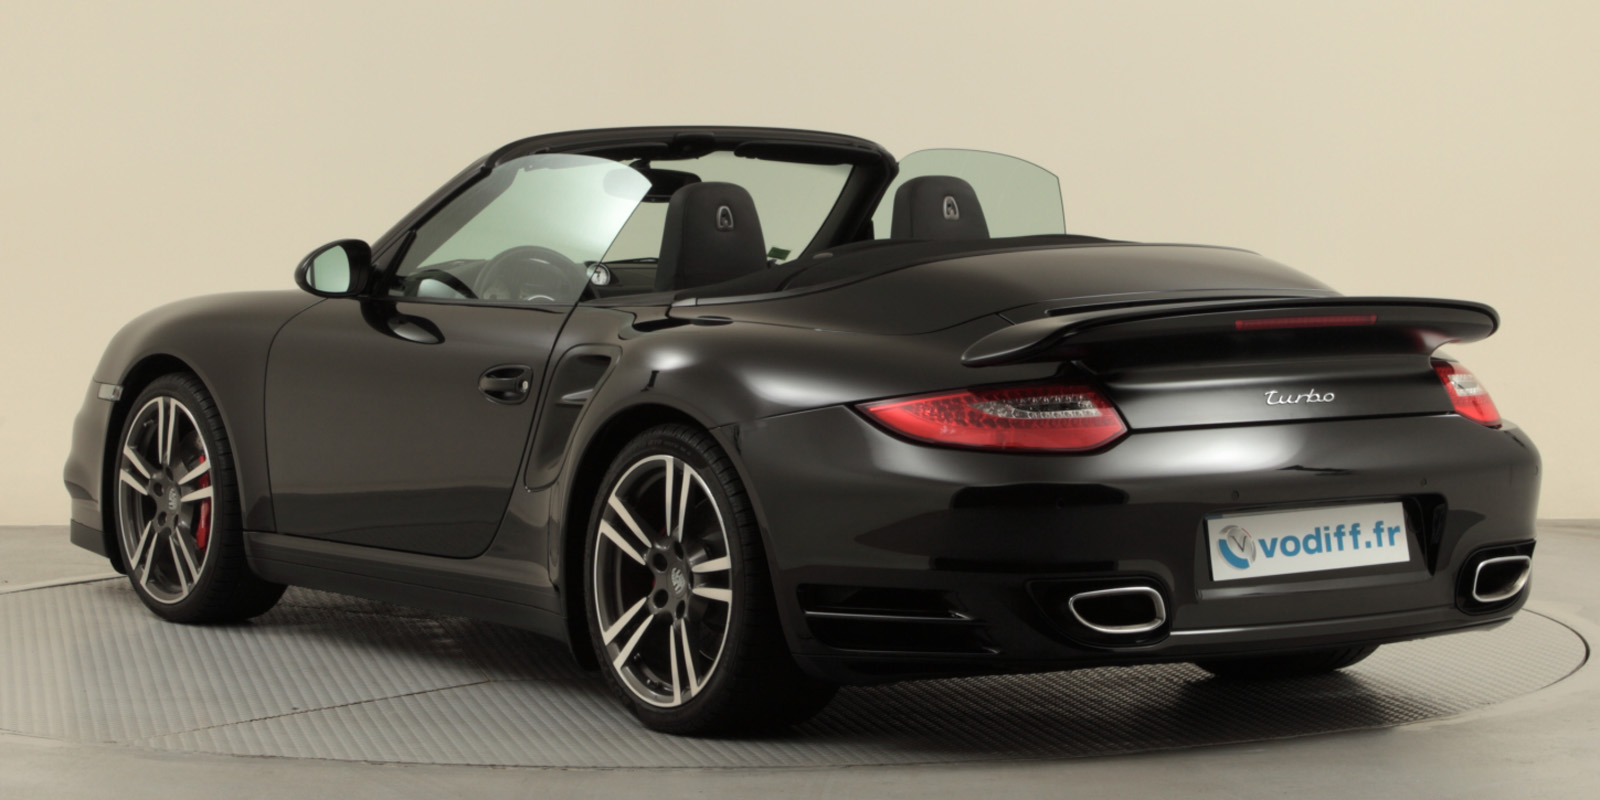 porsche 997 turbo cabriolet pdk 500 cv 19 600 km neuf. Black Bedroom Furniture Sets. Home Design Ideas